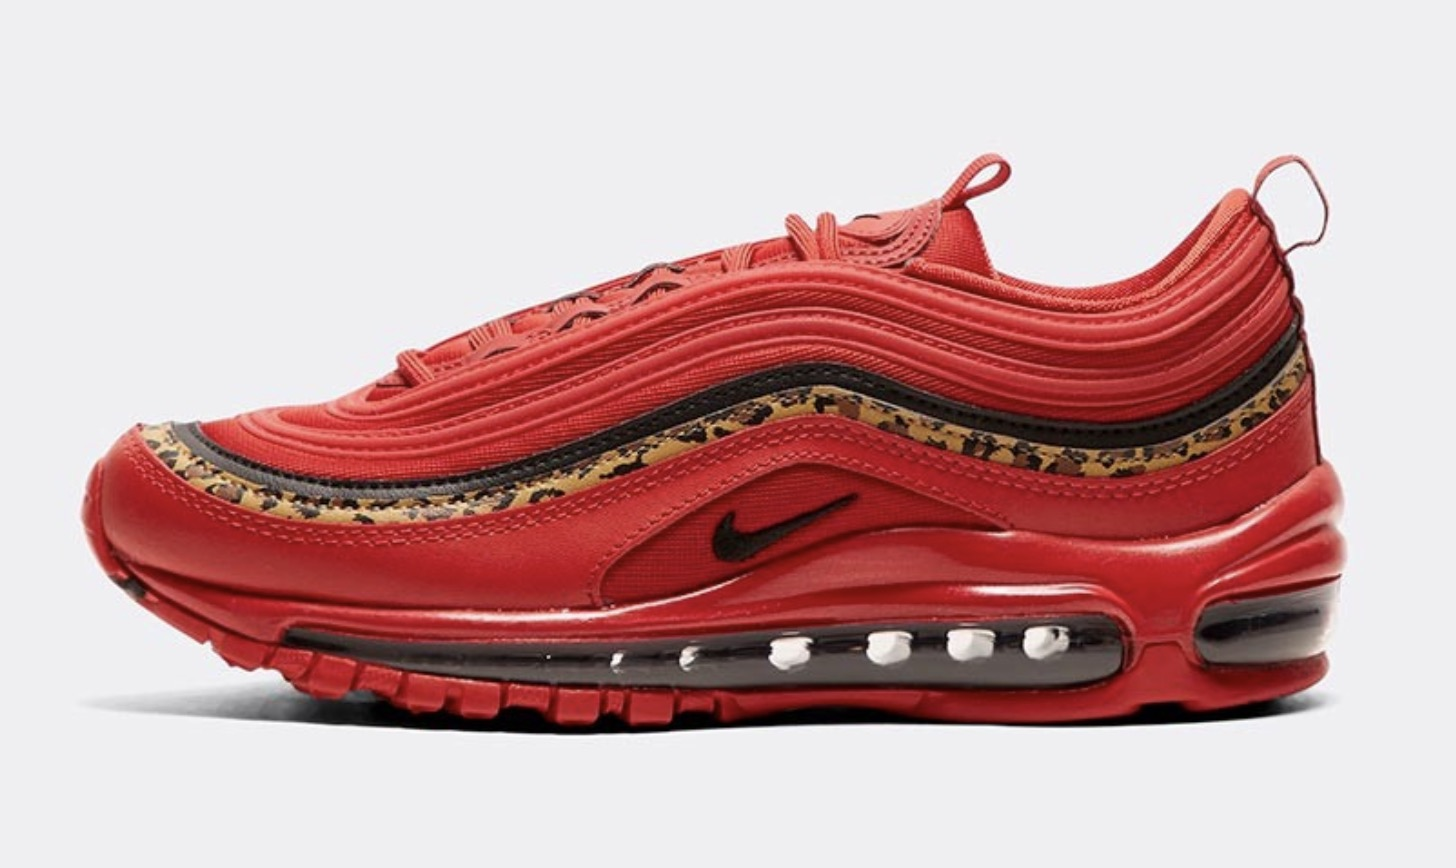 7 Air Max 97 S From Foot Asylum To Add To Your Everyday Rotation Style Guides The Sole Womens